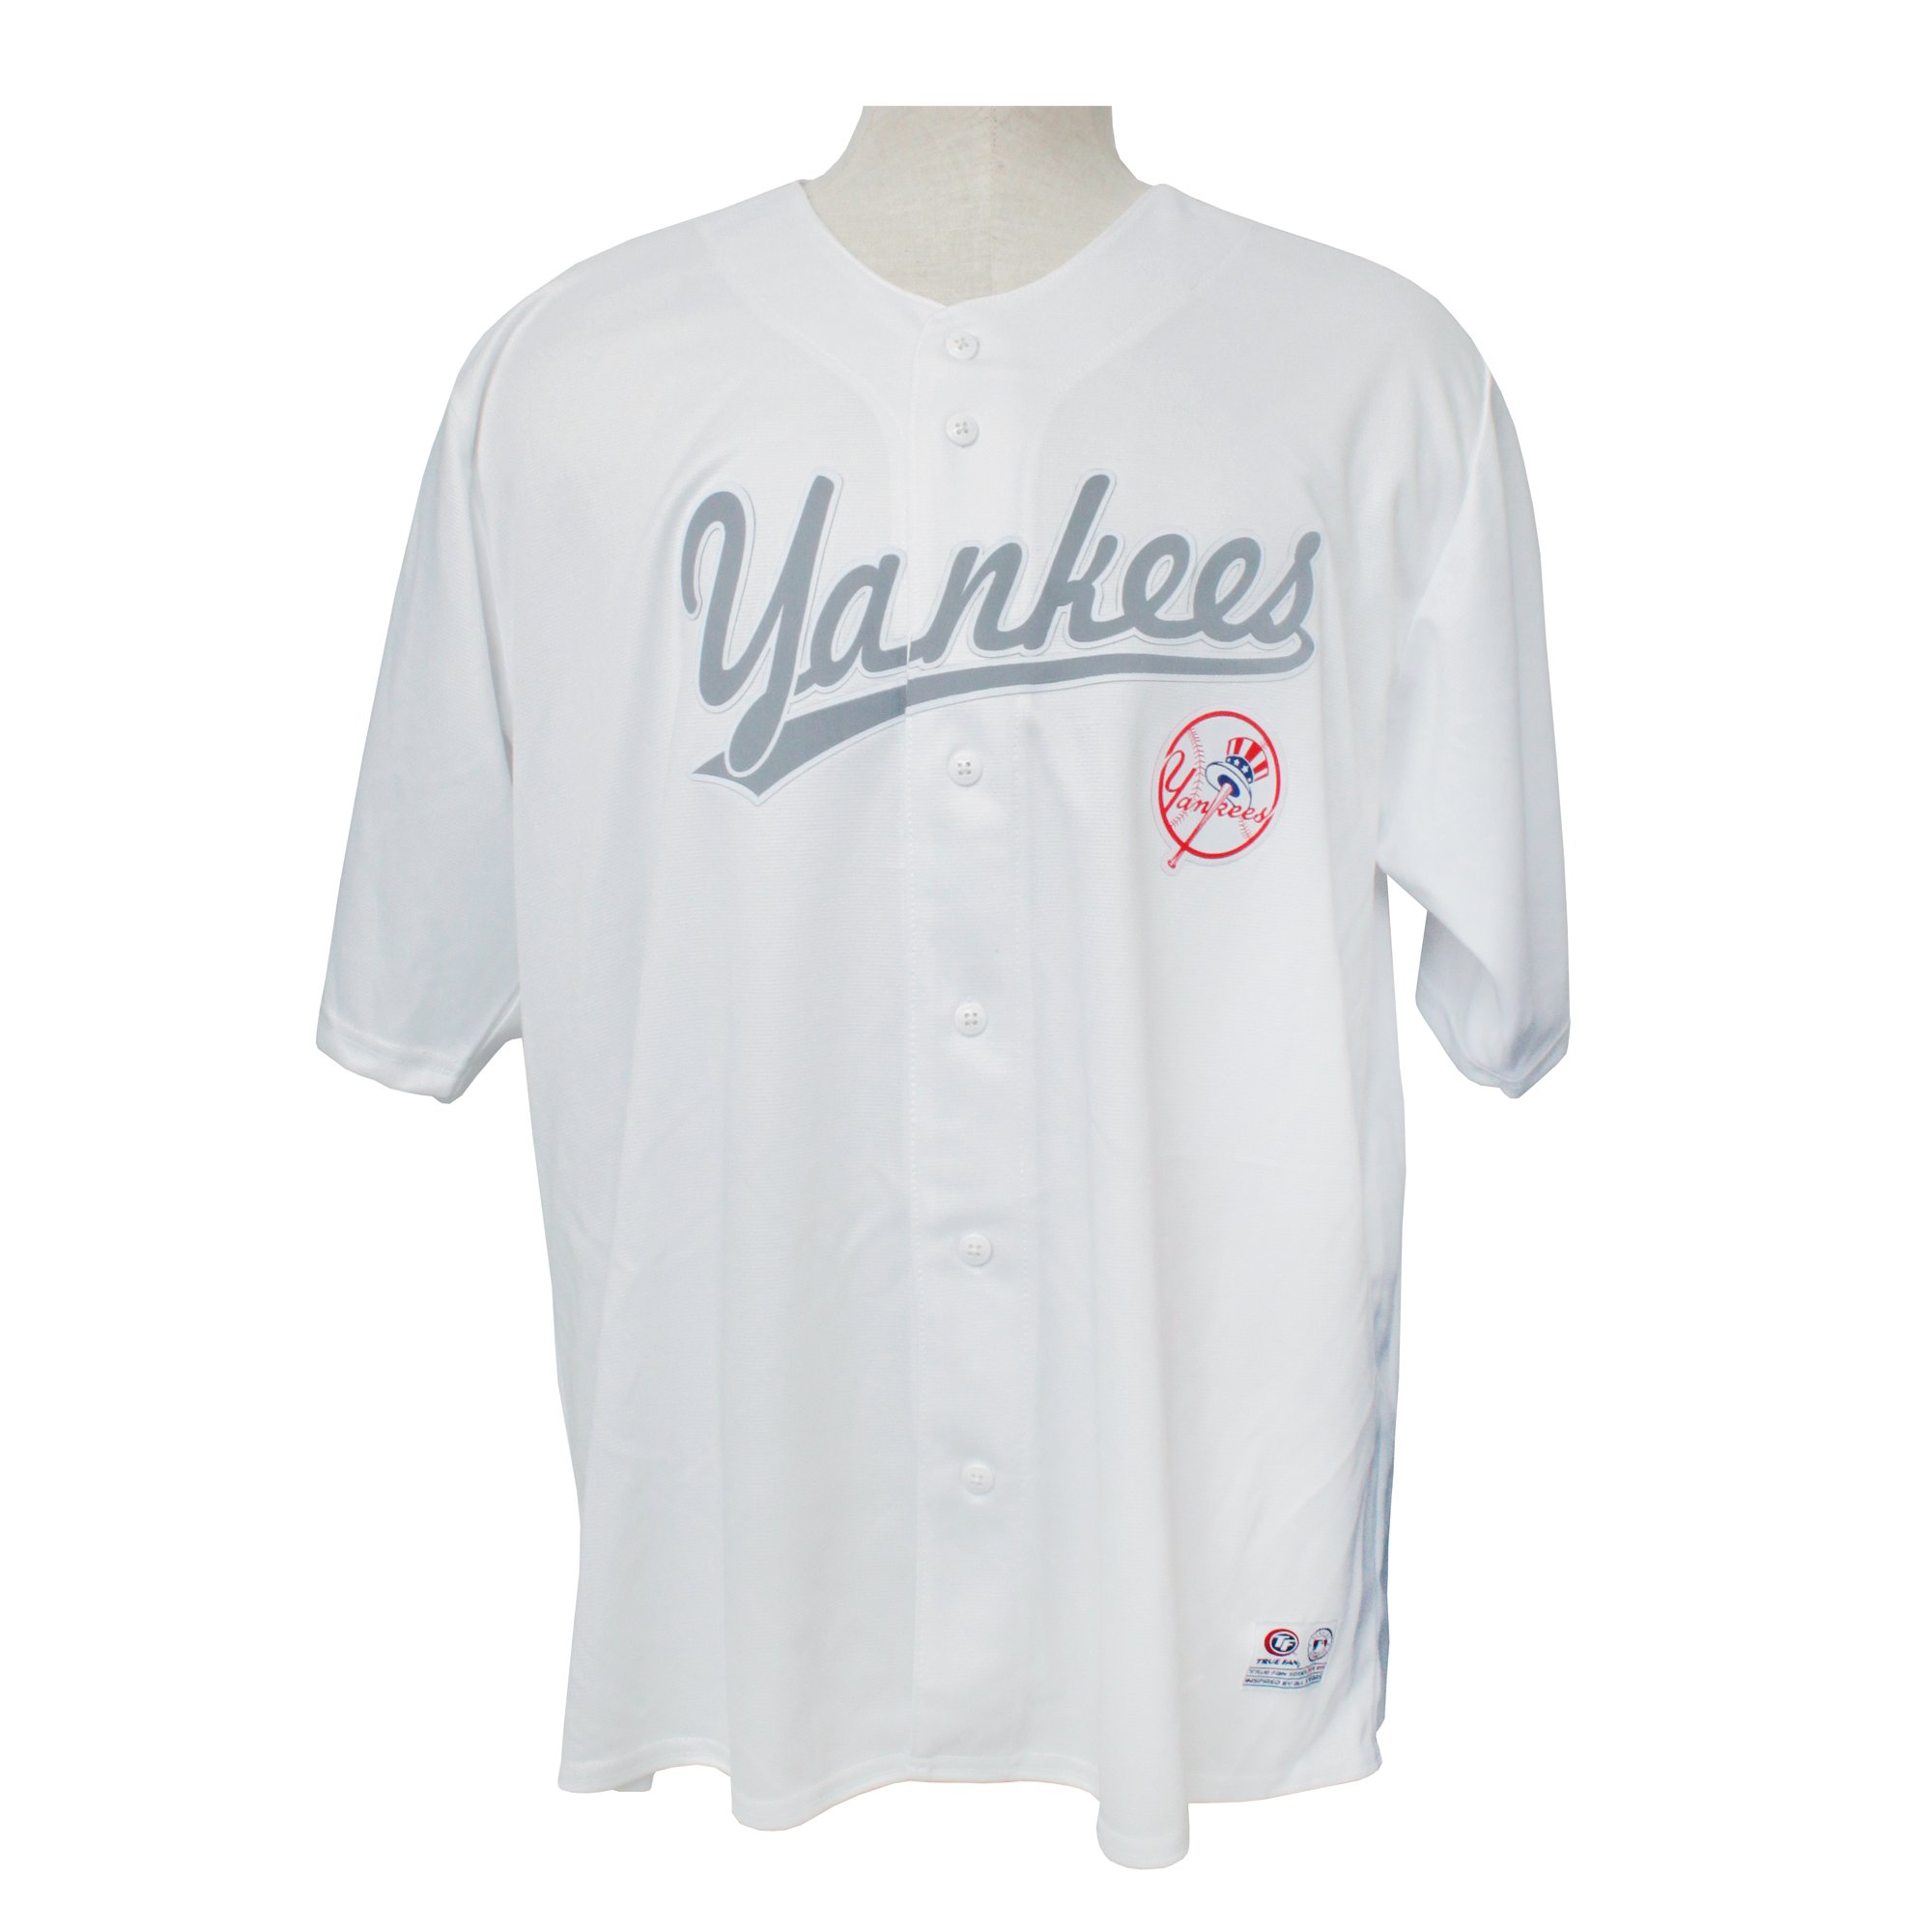 huge selection of 30c78 b8b87 MLB New York Yankees Mens White Baseball Jersey